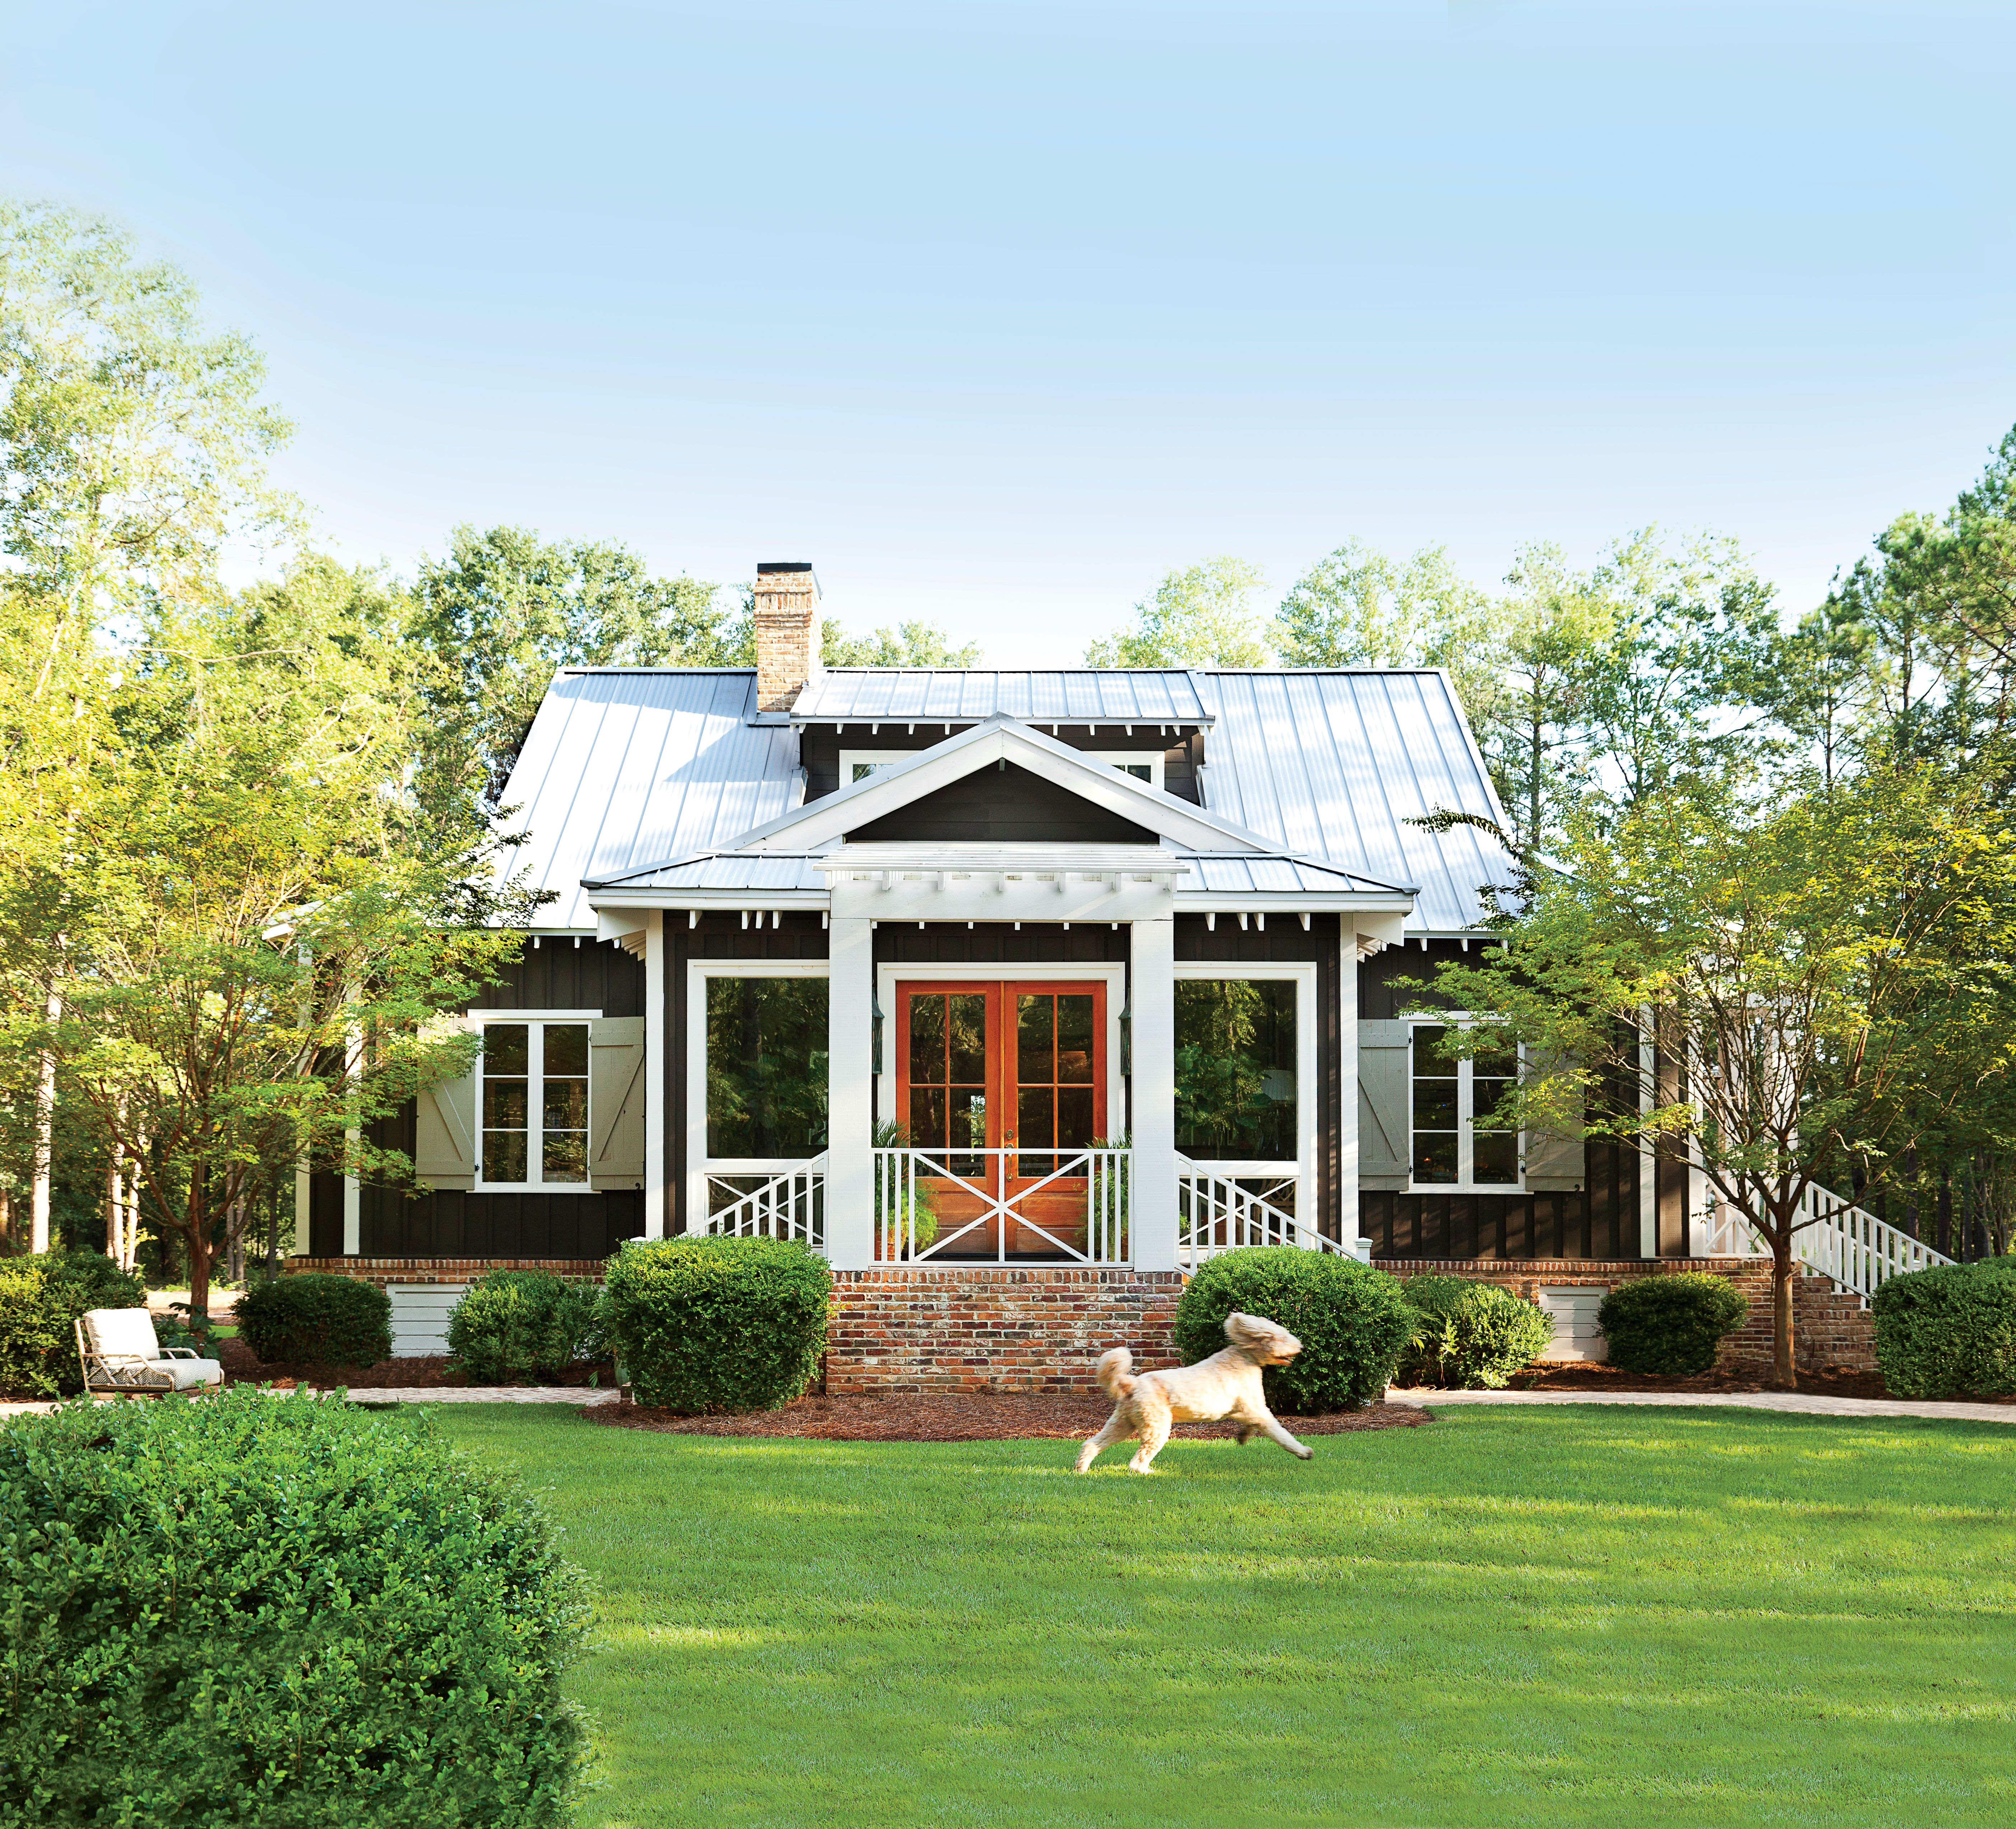 Why We Love Southern Living House Plan Number 1870 Southern Living House Plans Southern House Plans Country House Plans